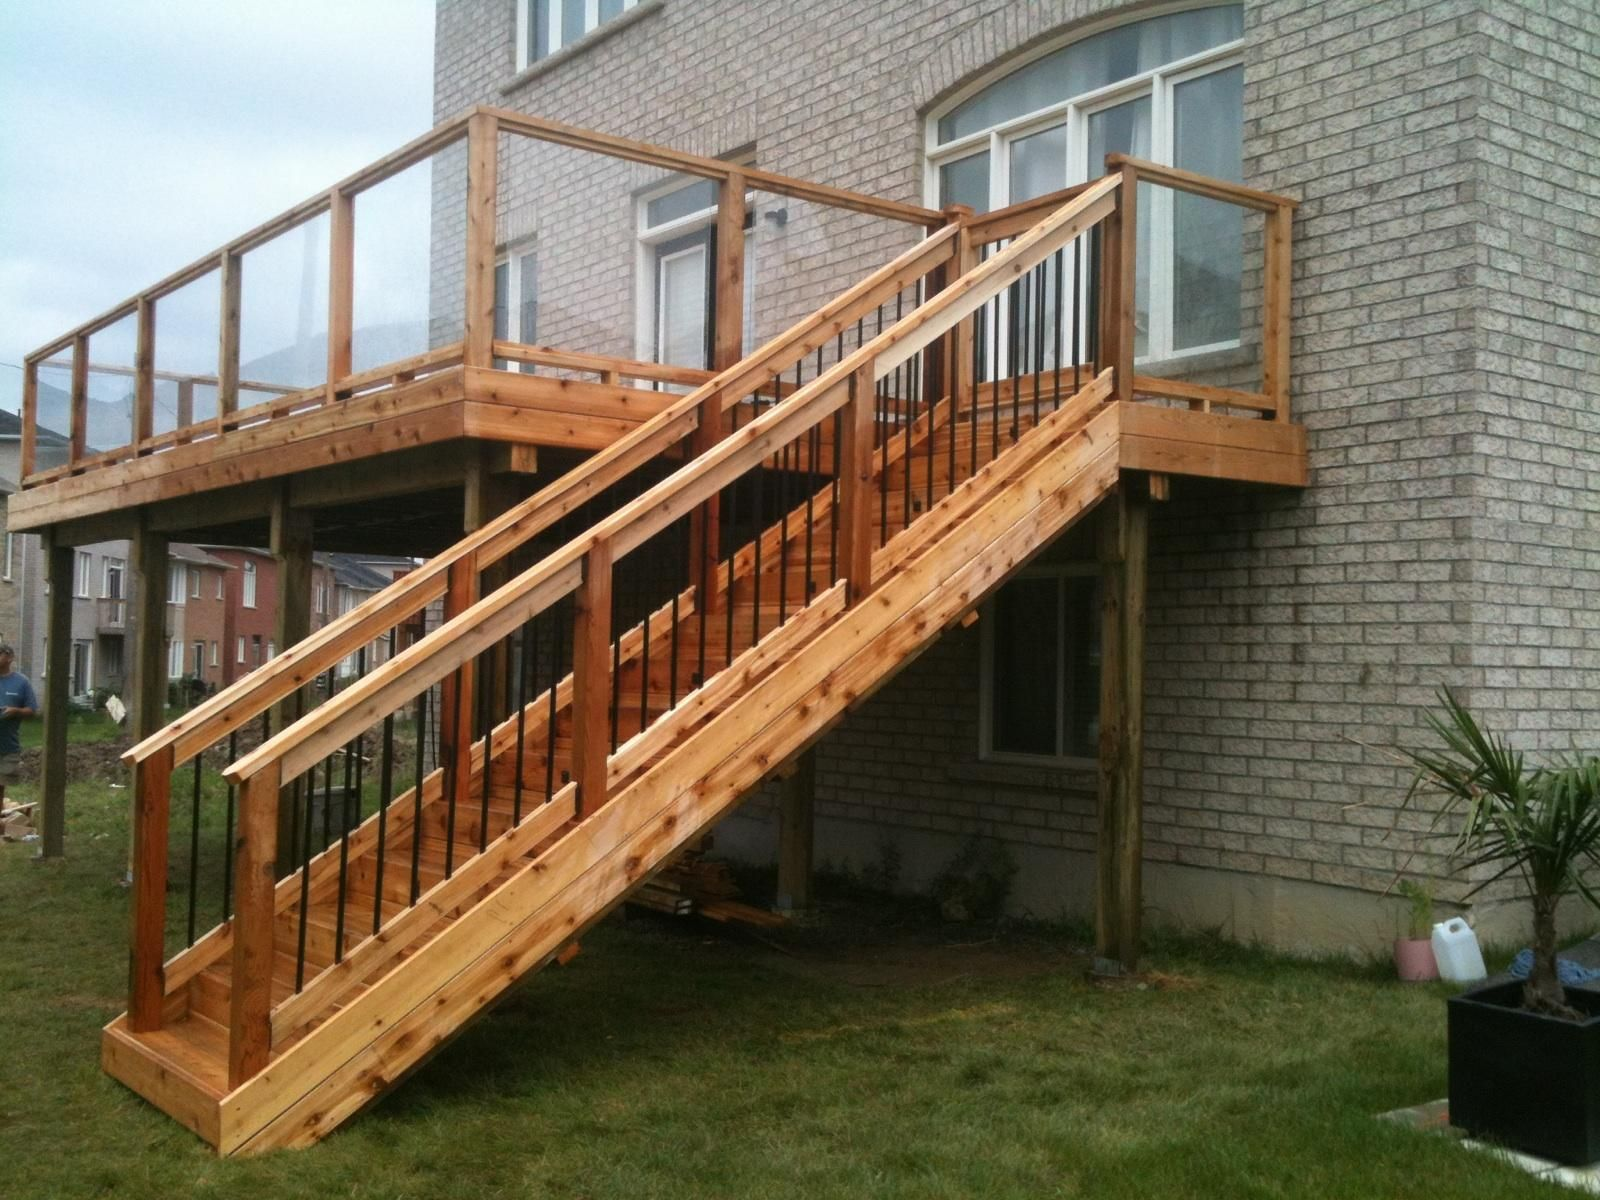 Best Second Story Cedar Deck And Stairs With Glass Railing 400 x 300